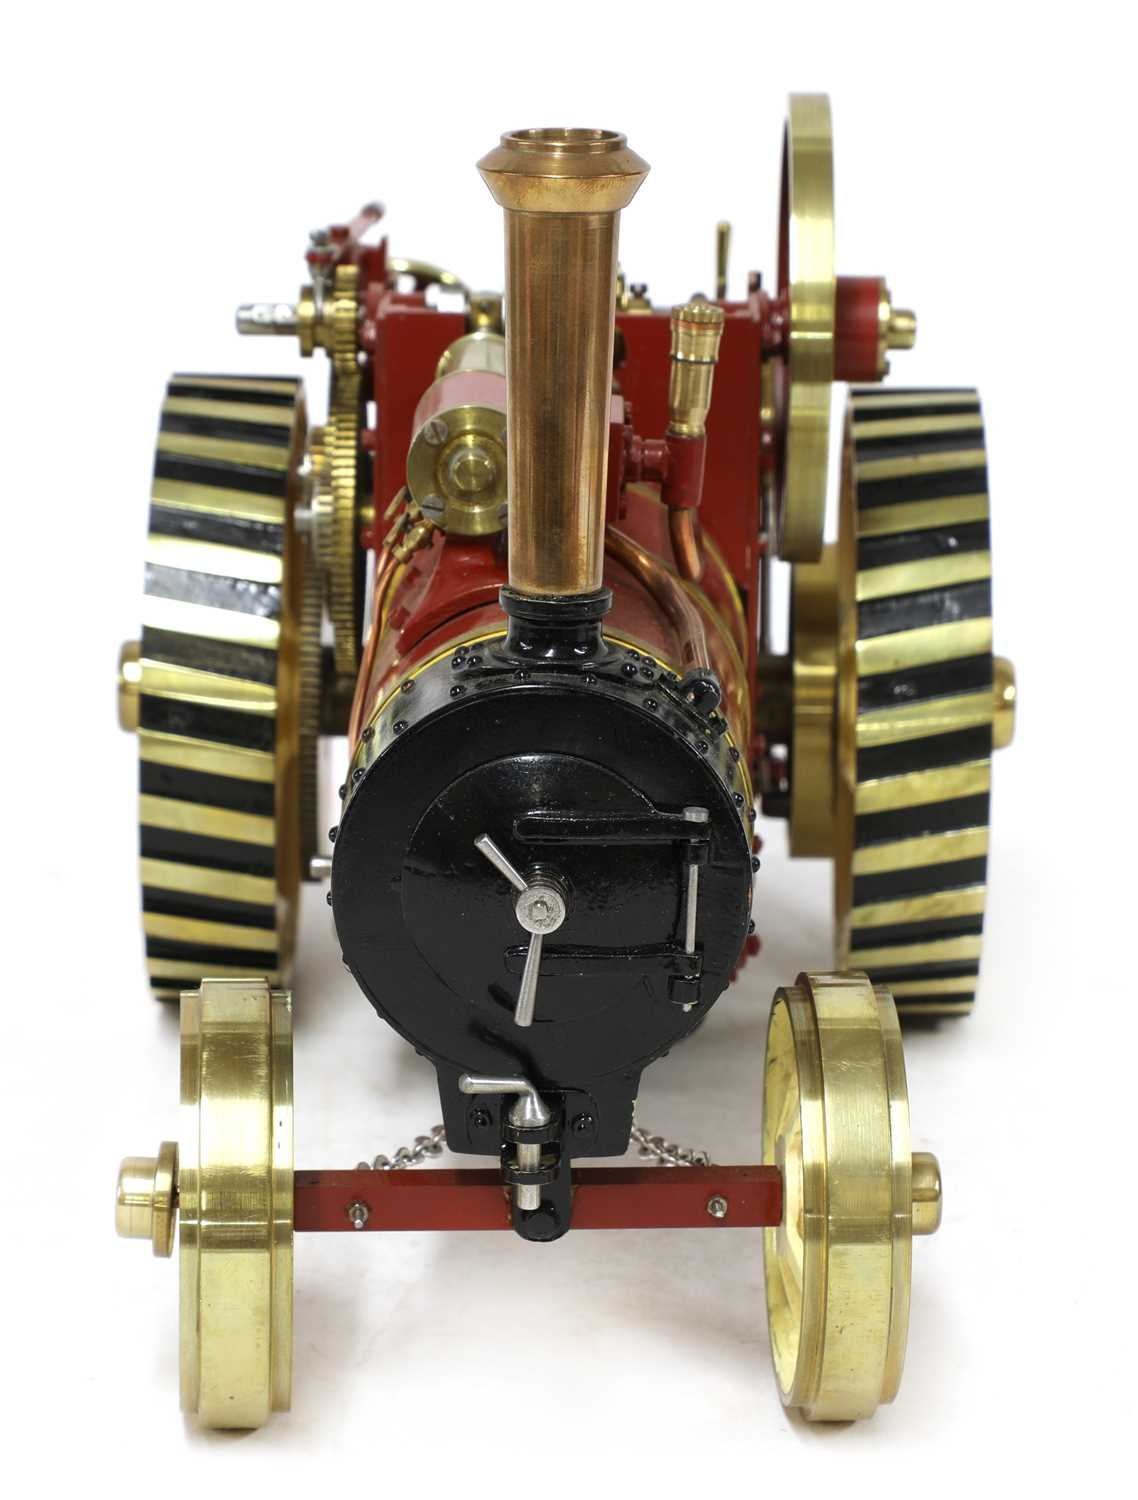 A ¾in scale model Burrell-type live steam traction engine, - Image 3 of 7